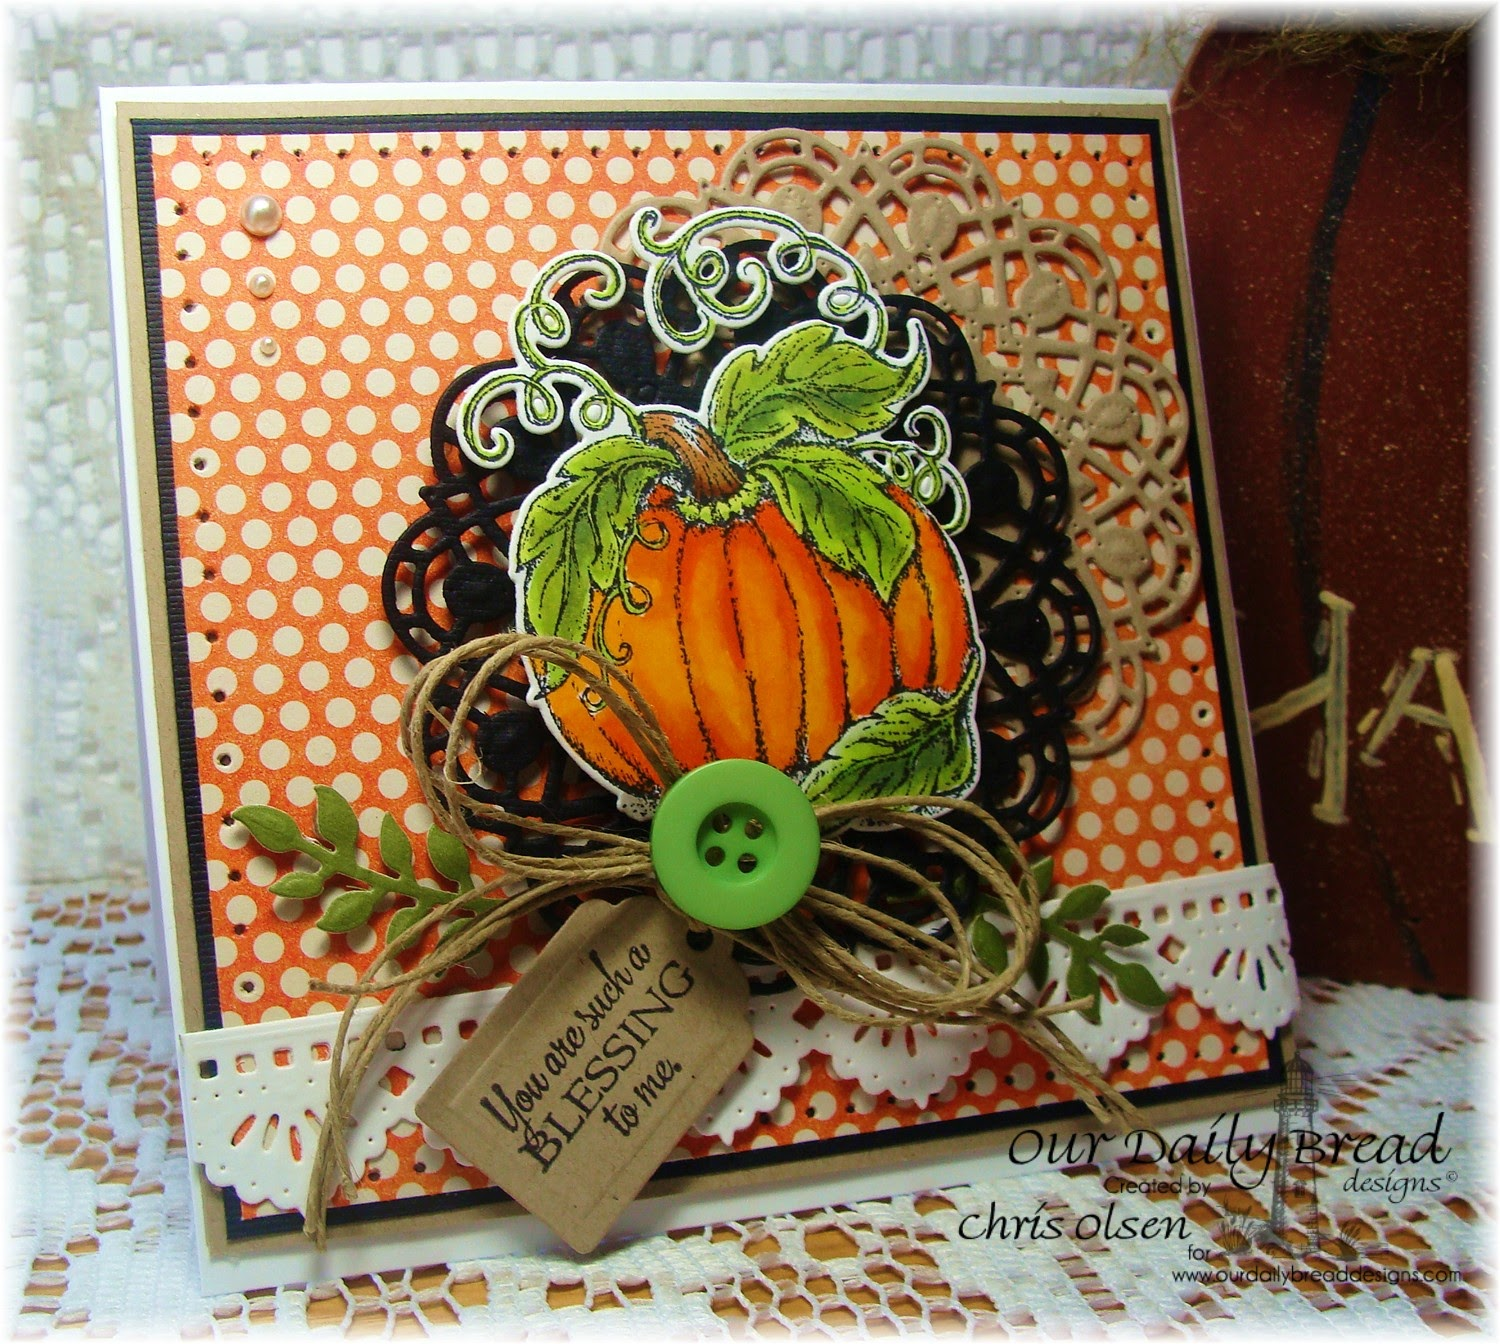 Our Daily Bread Designs, Pumpkin, Doily Blessings, Doily die, pumpkin die, beautiful borders die, recipe and tags die, fancy foliage die, ODBDSLC214, designer-Chris Olsen